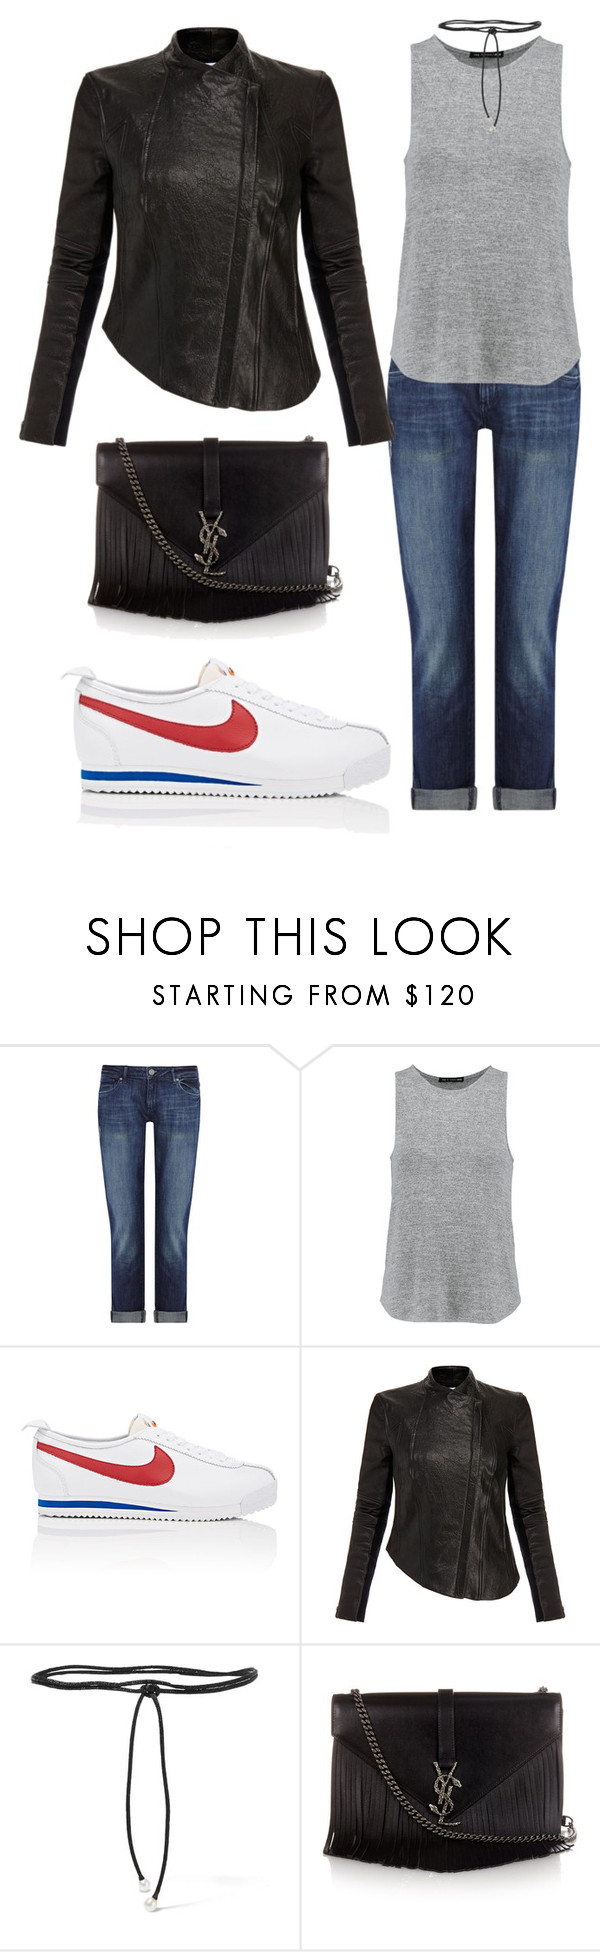 """""""Leather Jacket Contest"""" by arta13 liked on Polyvore"""